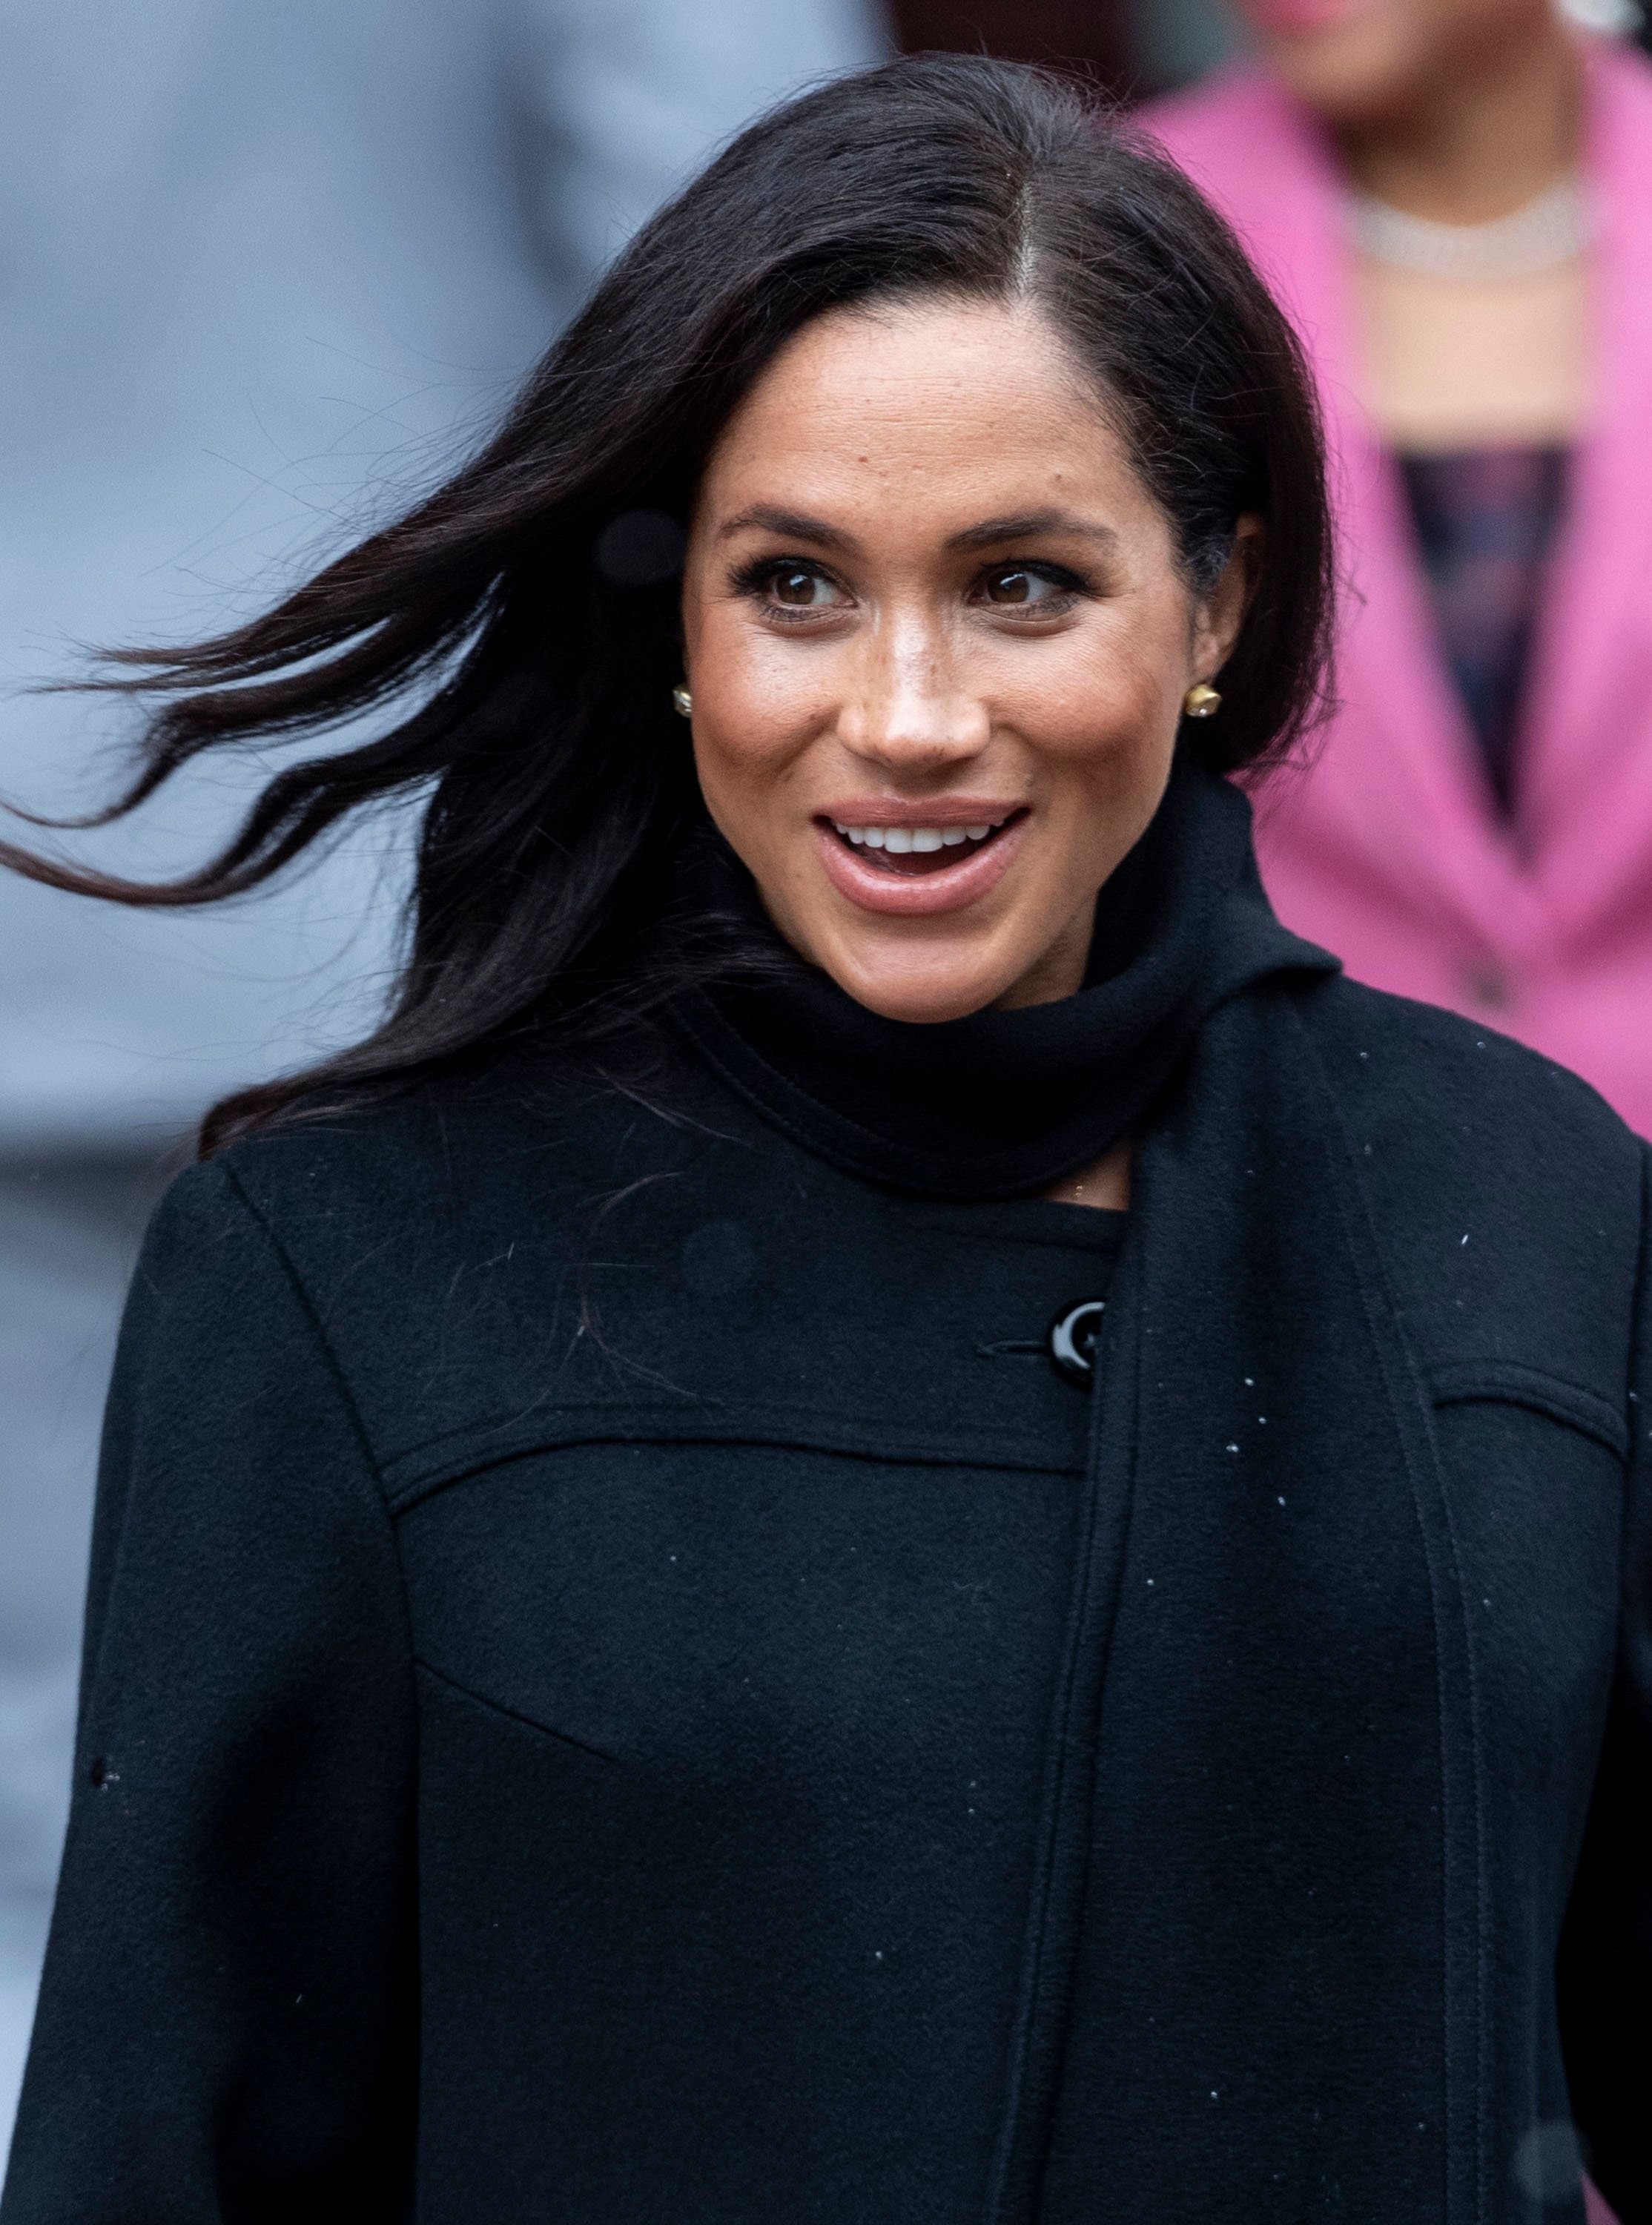 BRISTOL, ENGLAND - FEBRUARY 01: Meghan, Duchess of Sussex visits the Bristol Old Vic and meets members of the public gathered outside on February 1, 2019 in Bristol, England. (Photo by Mark Cuthbert/UK Press via Getty Images)